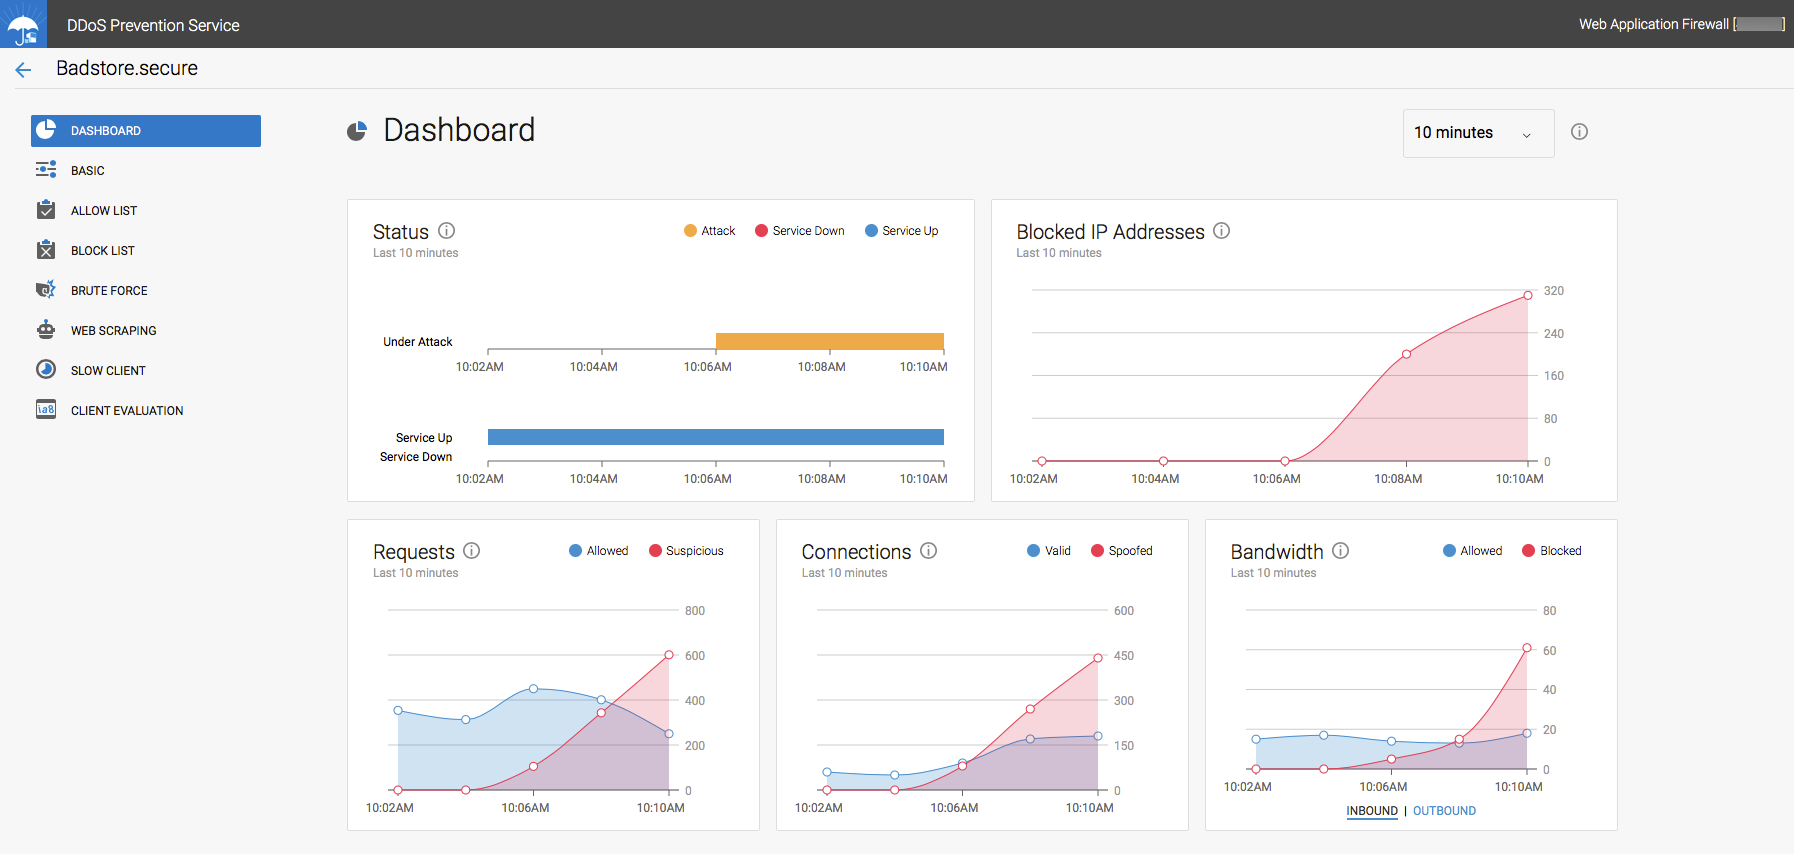 What's New in the Barracuda Web Application Firewall